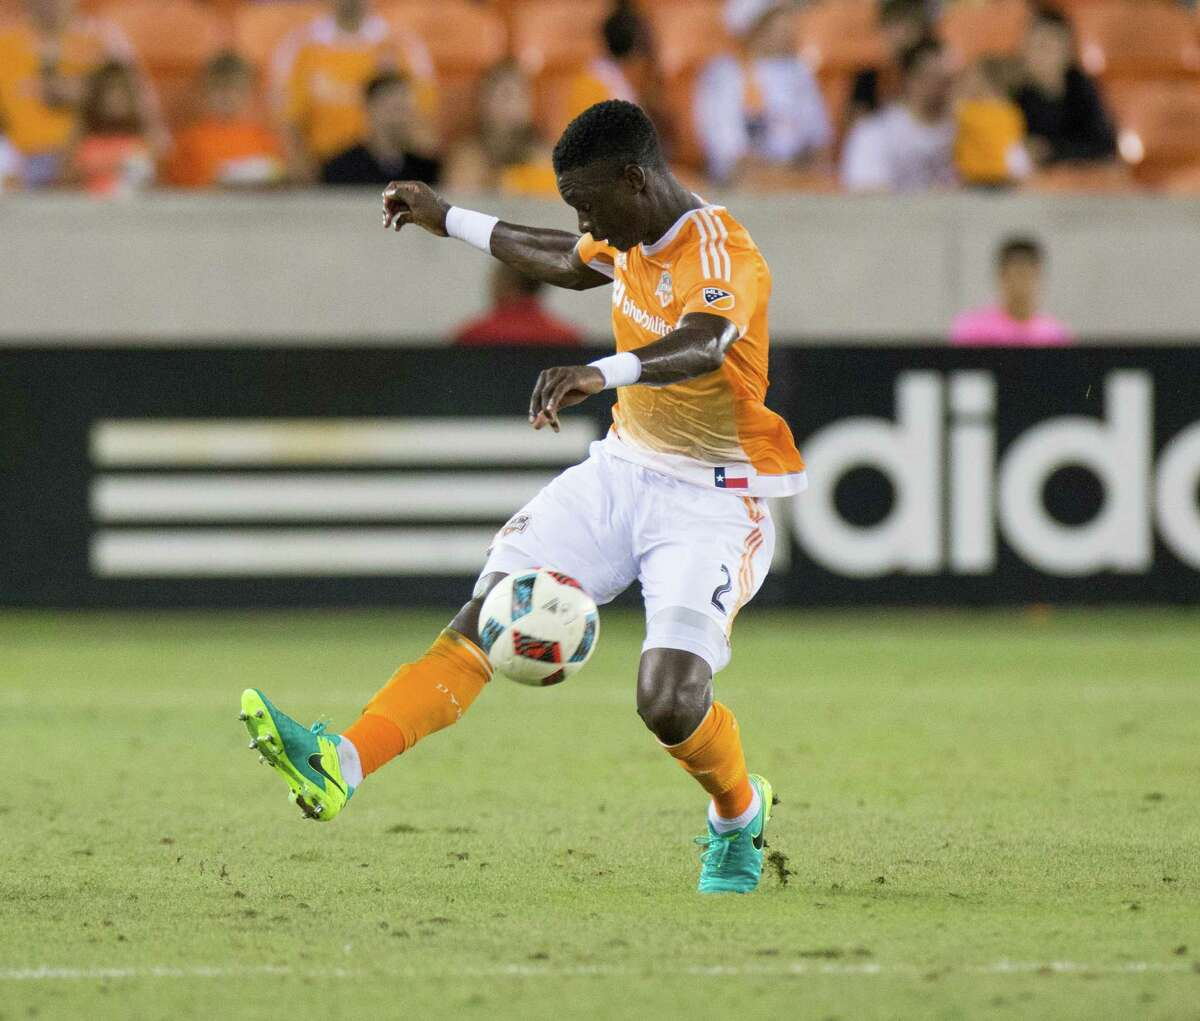 Houston Dynamo defender Jalil Anibaba (2) controlliing the ball mid-field during the second half of action between the Houston Dynamo and the D.C. United during a soccer game at BBVA Compass, Saturday, June 18, 2016, in Houston. Houston Dynamo tied D.C. United 0-0. ( Juan DeLeon / for the Houston Chronicle )